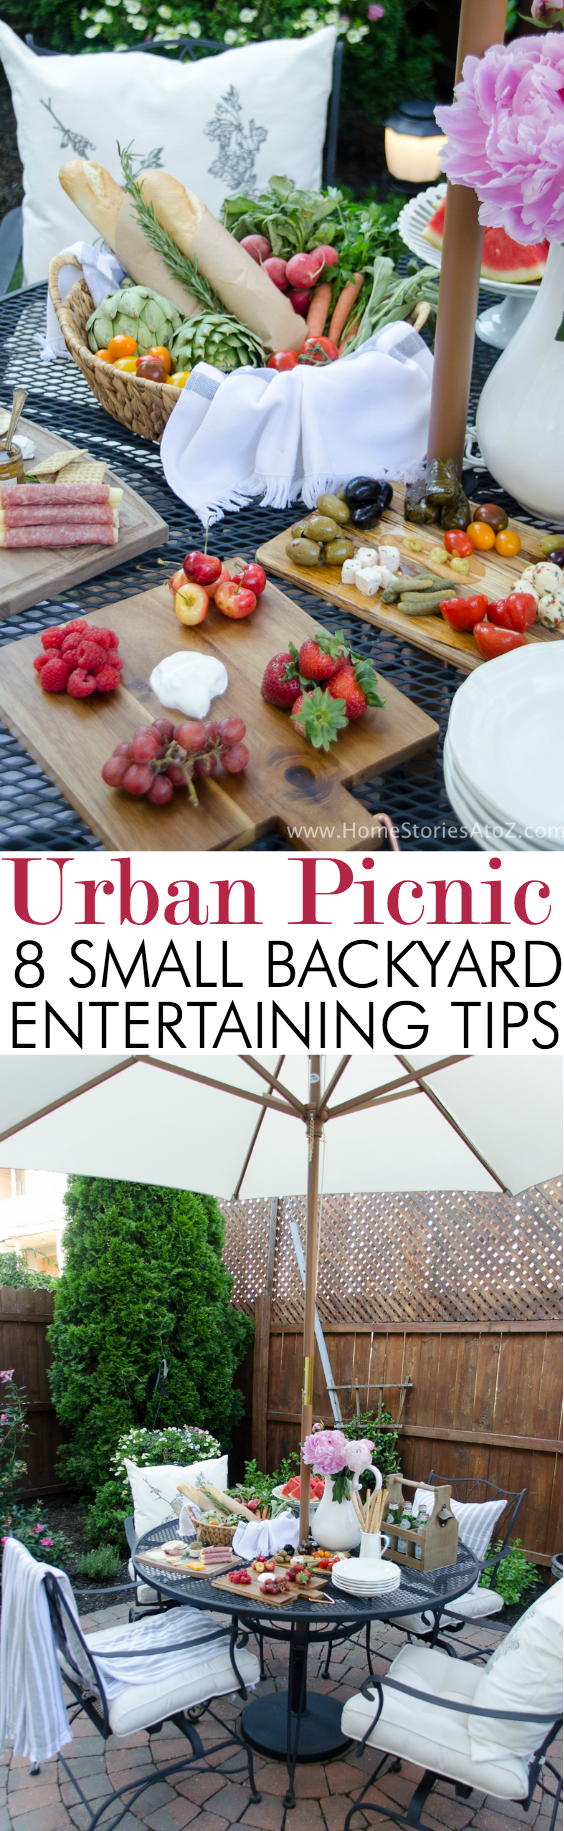 Urban picnic small backyard entertaining tips